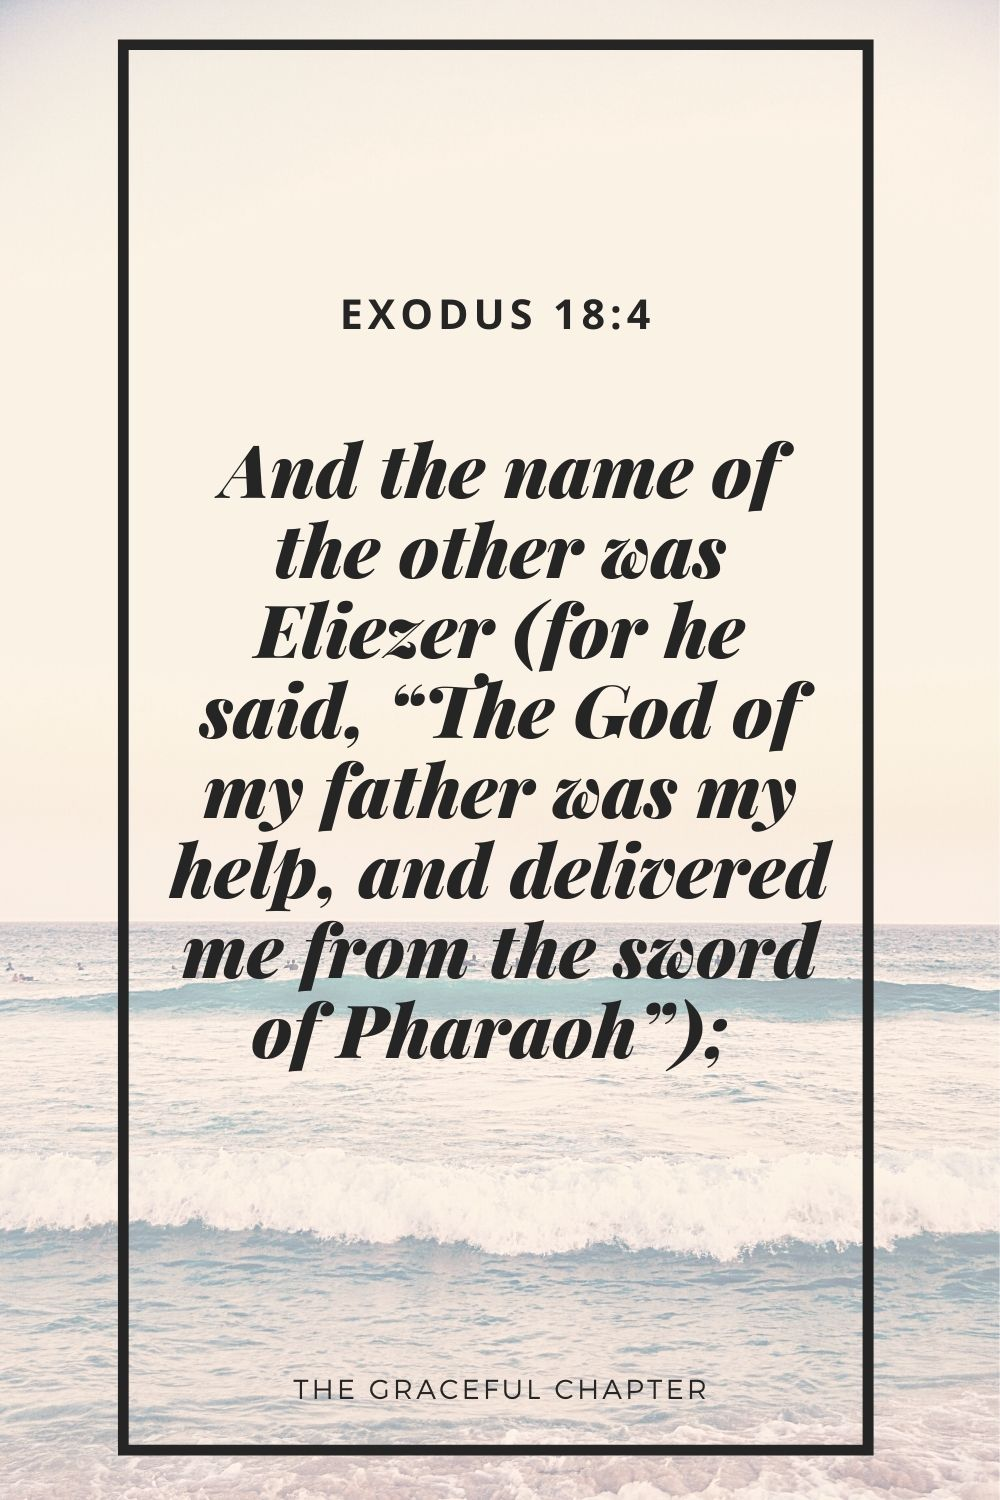 """And the name of the other was Eliezer (for he said, """"The God of my father was my help, and delivered me from the sword of Pharaoh"""");  Exodus 18:4"""